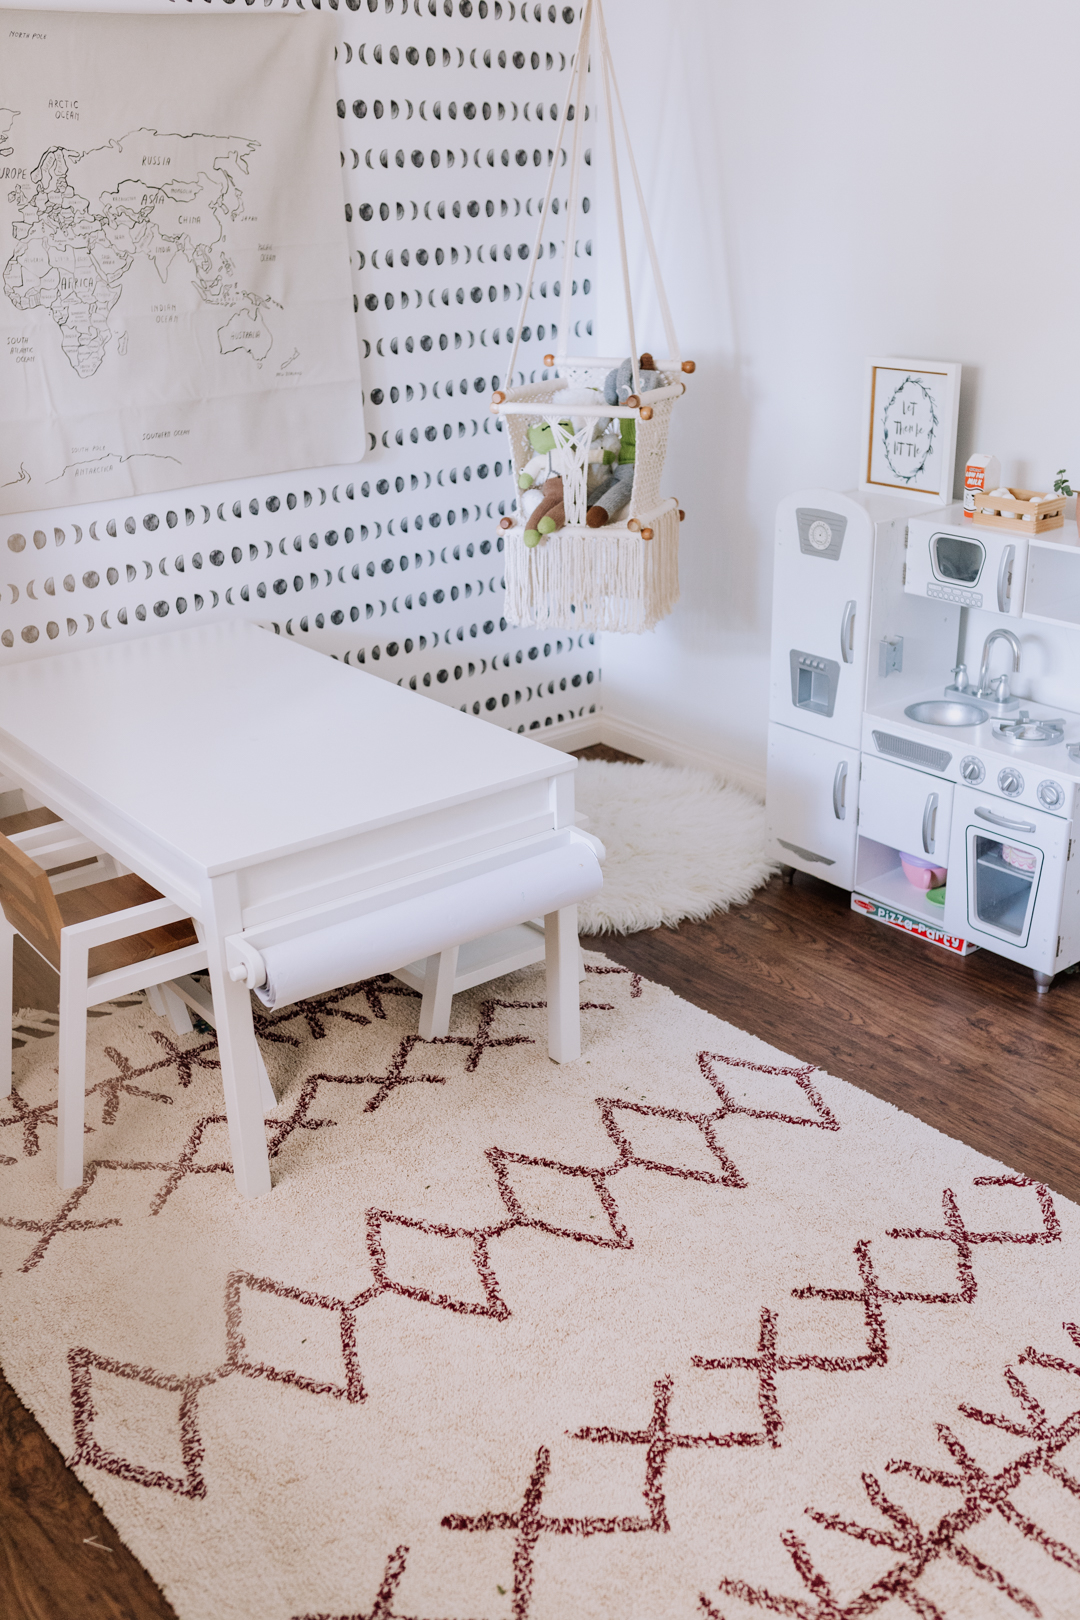 darling modern playroom in a small space | thelovedesignedlife.com #playroom #macrame #playkitchen